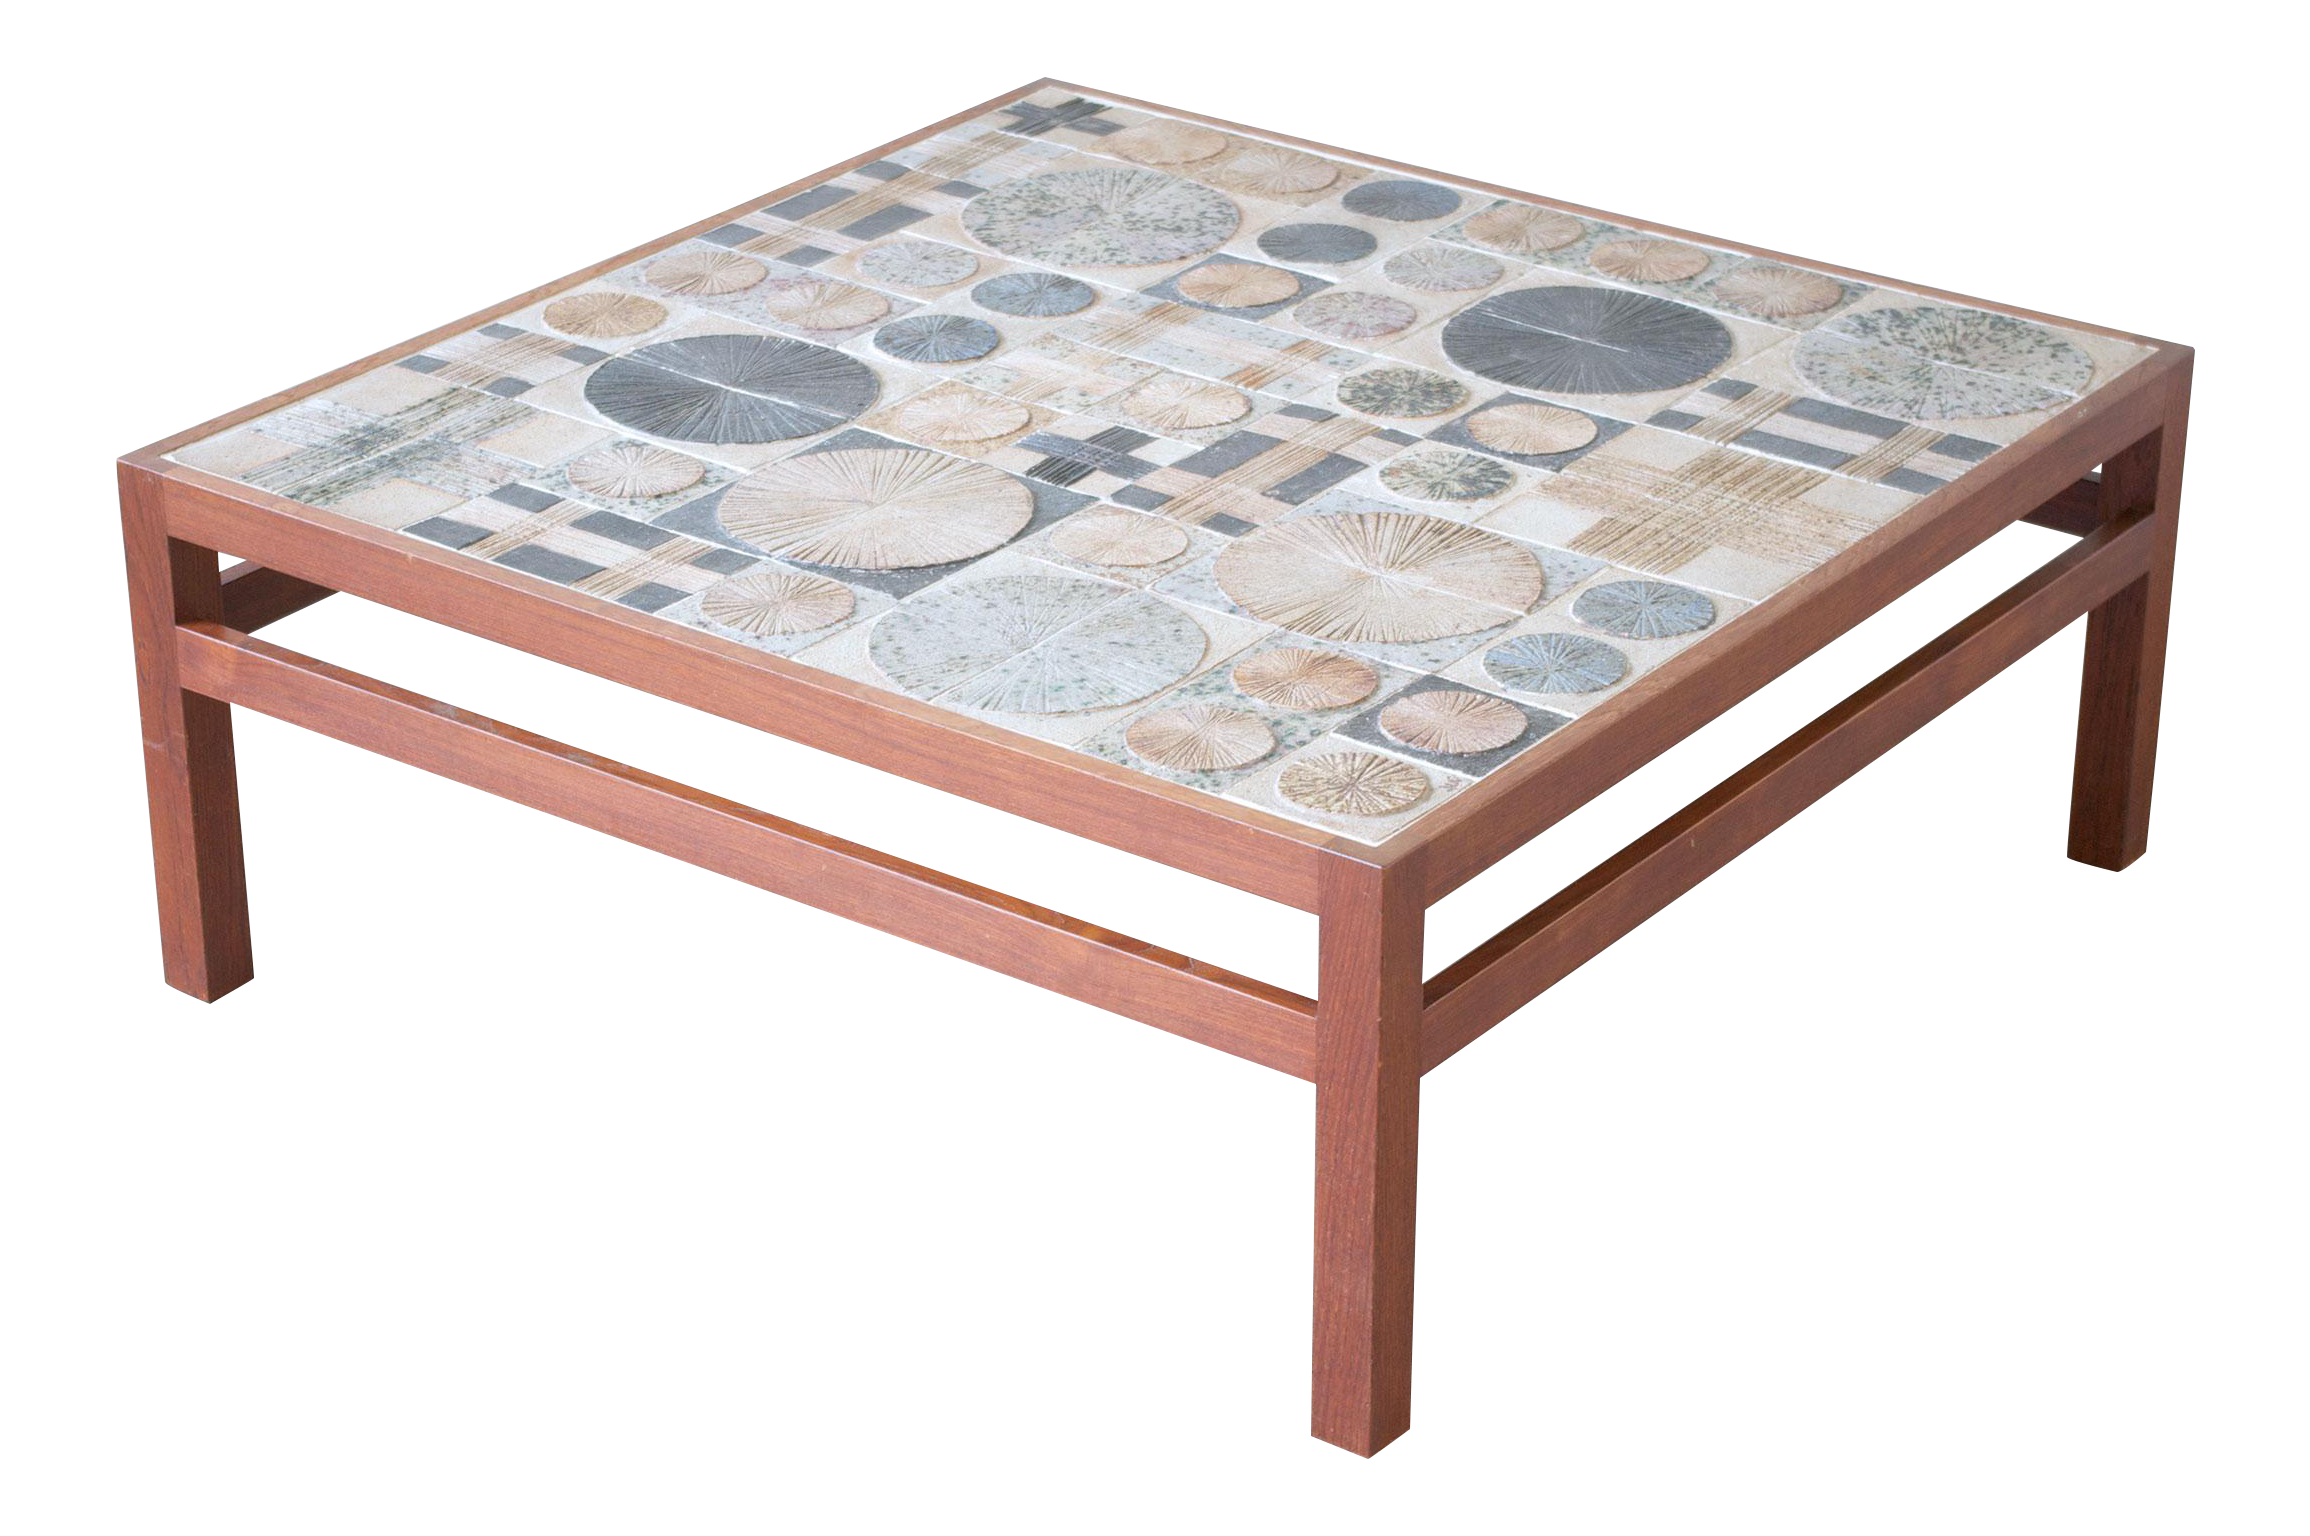 World Class Teak Coffee Table by Willy Beck with Tue Poulsen Tile